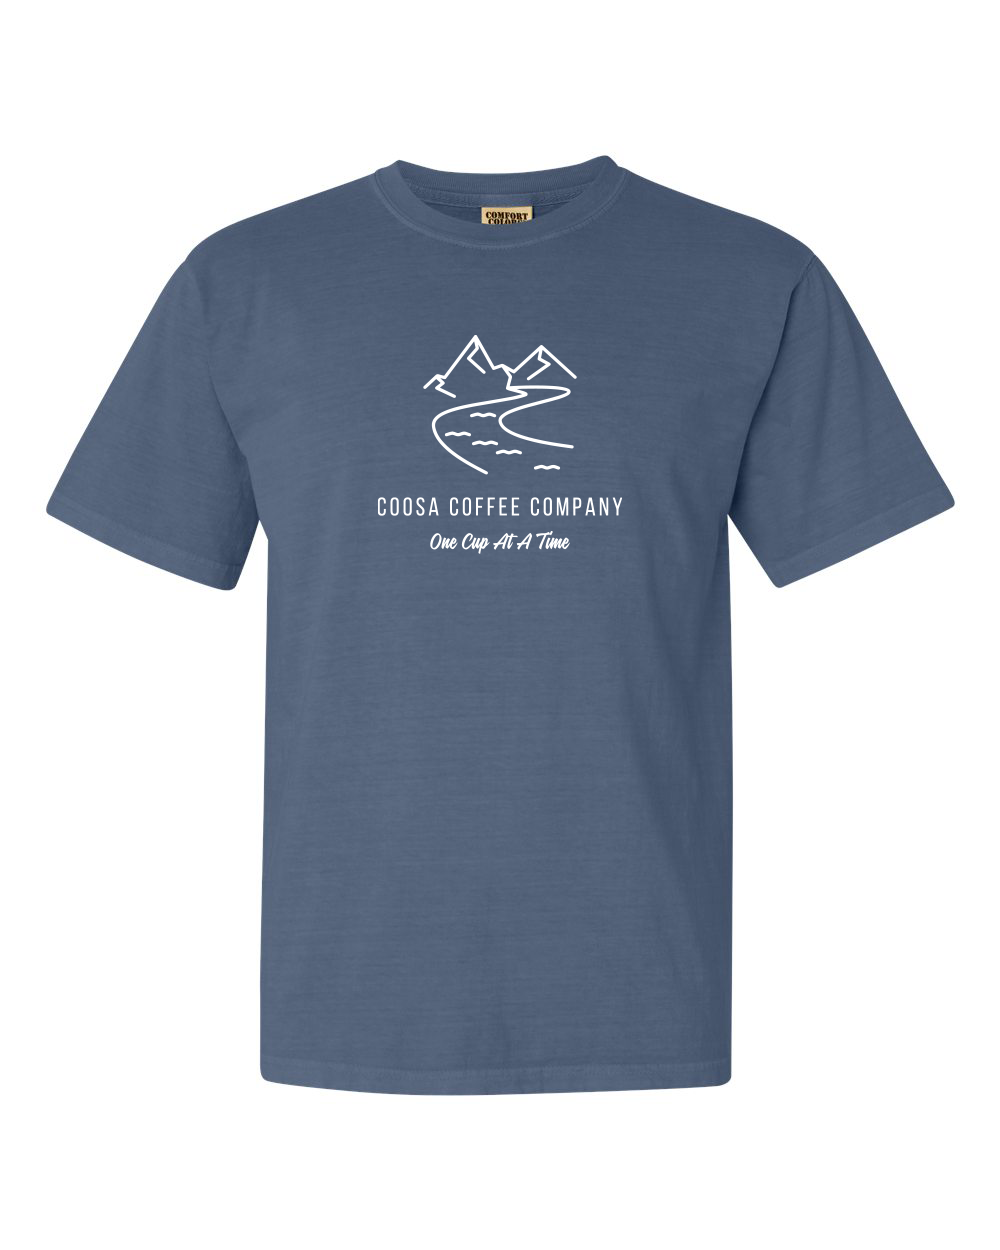 T-shirt - with FREE 2oz Coffee Sample